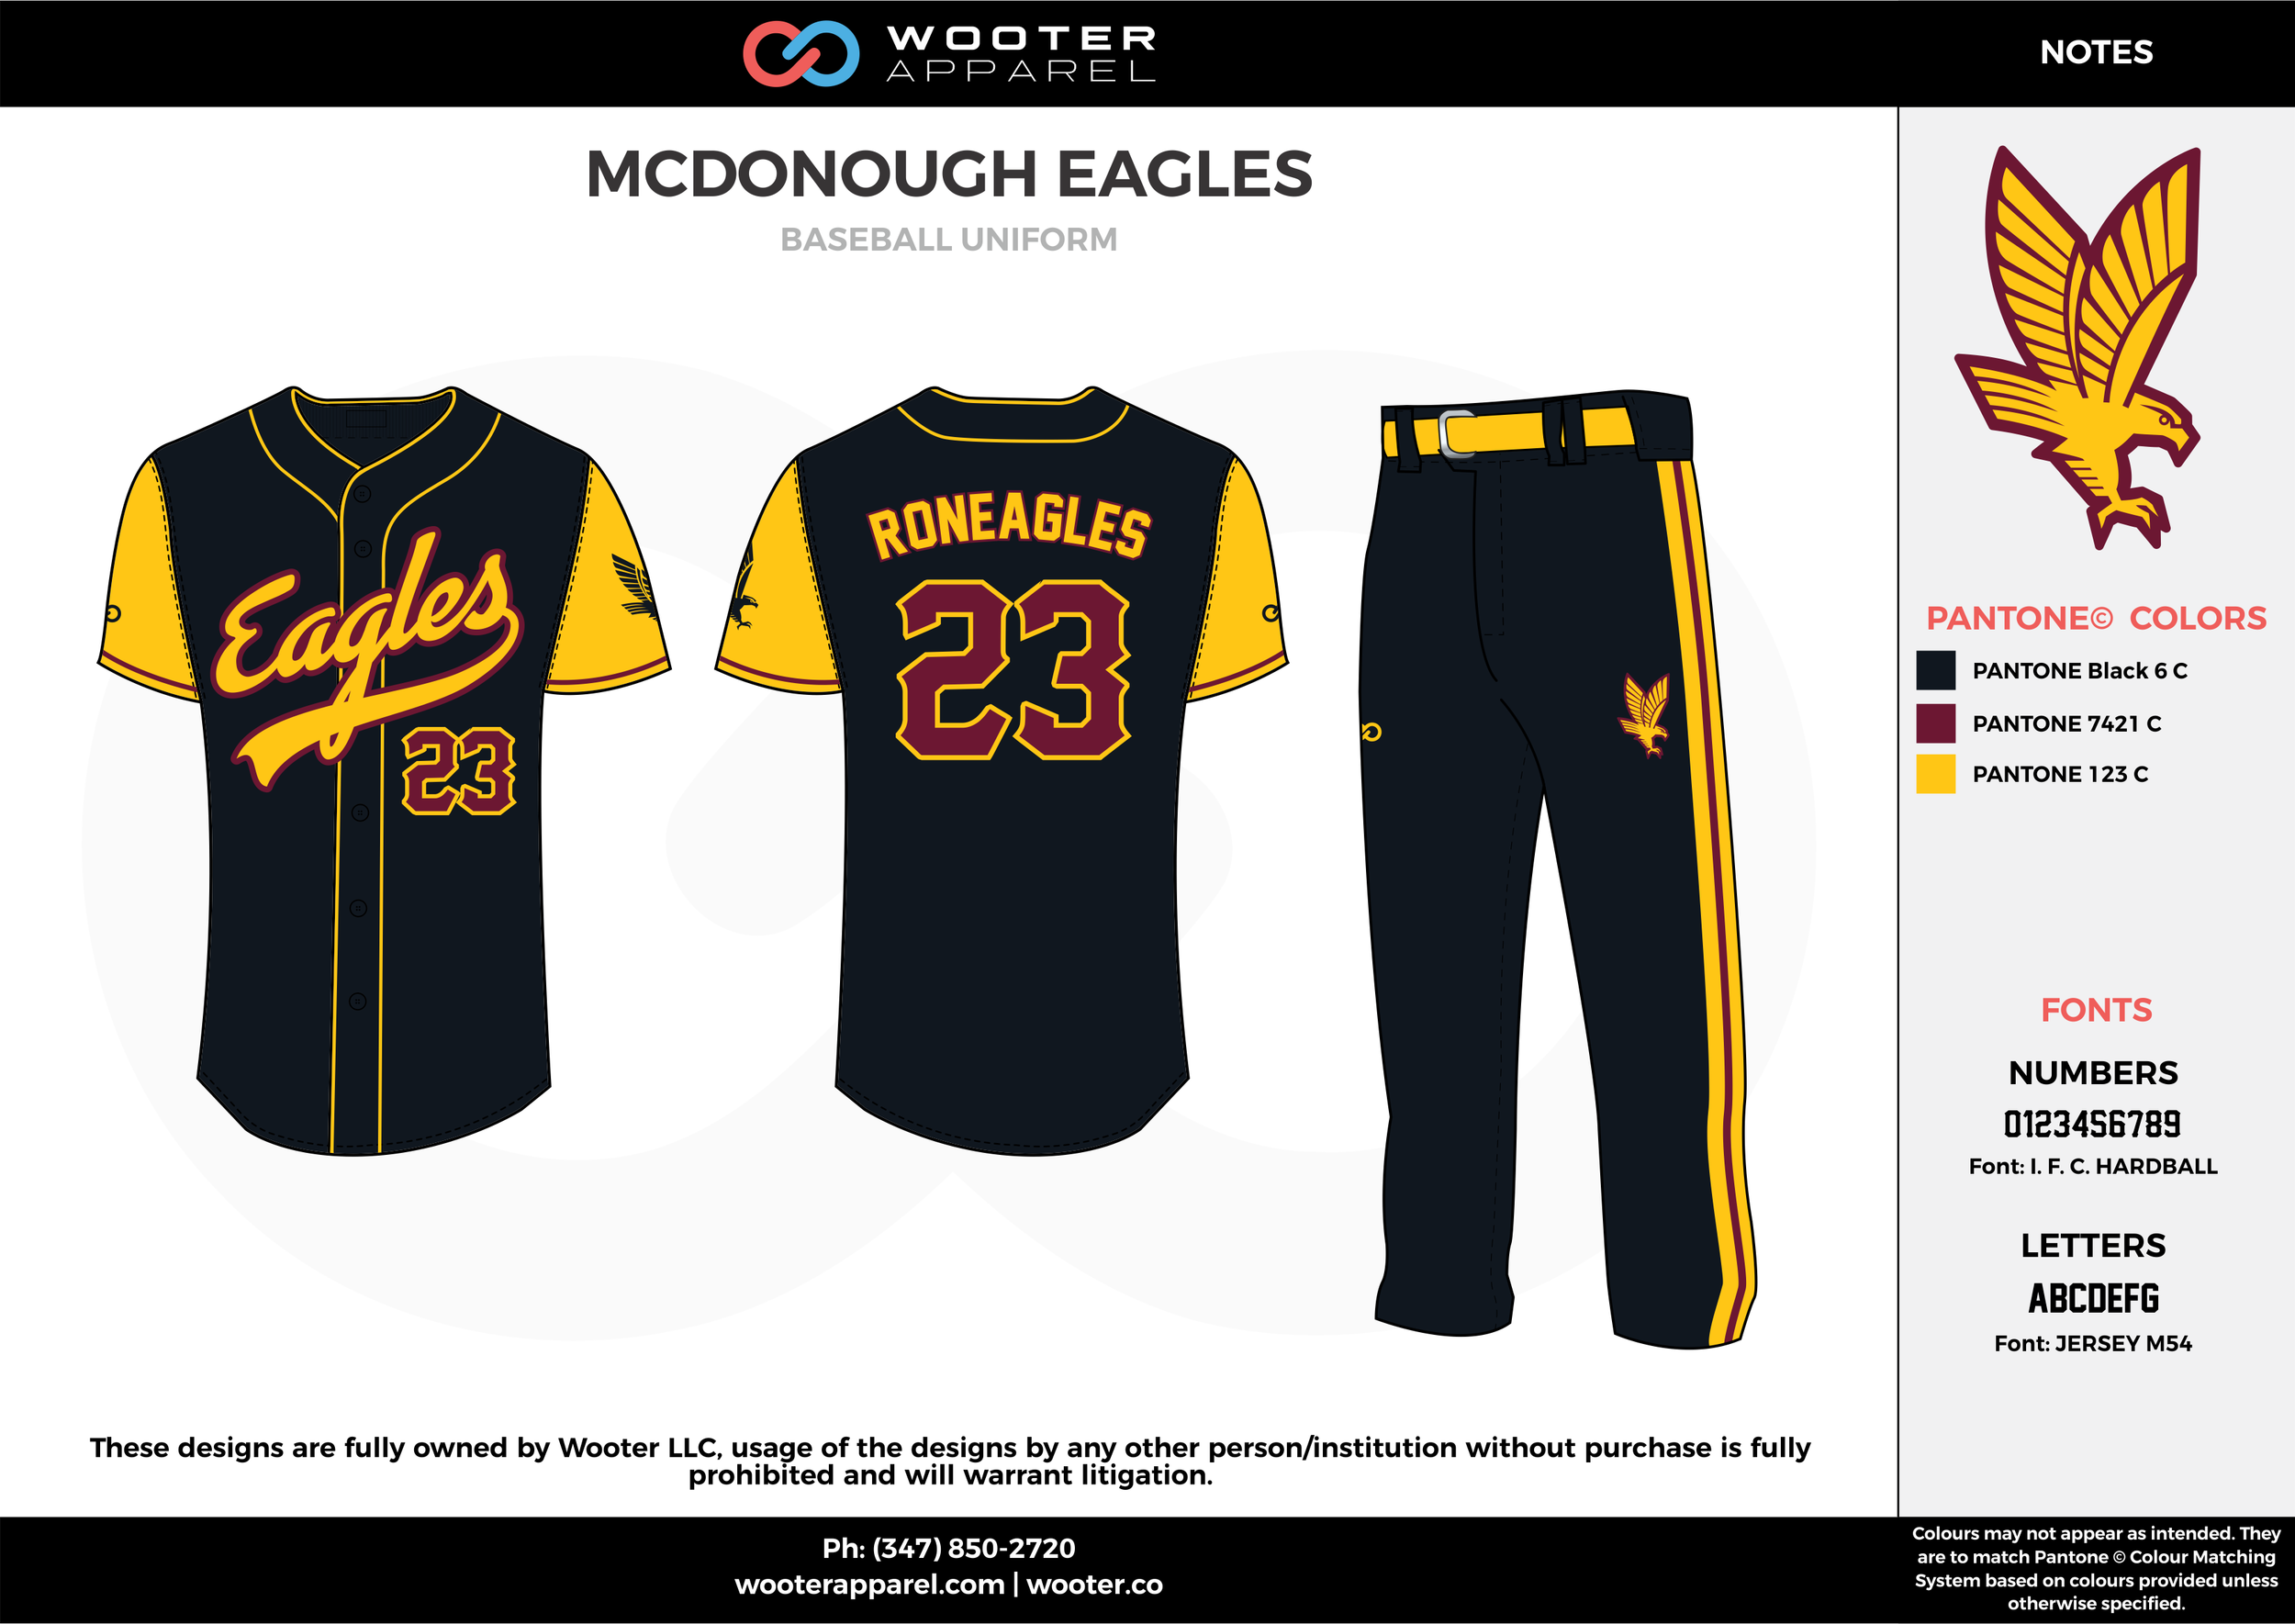 MCDONOUGH EAGLES black maroon yellow baseball uniforms jerseys pants